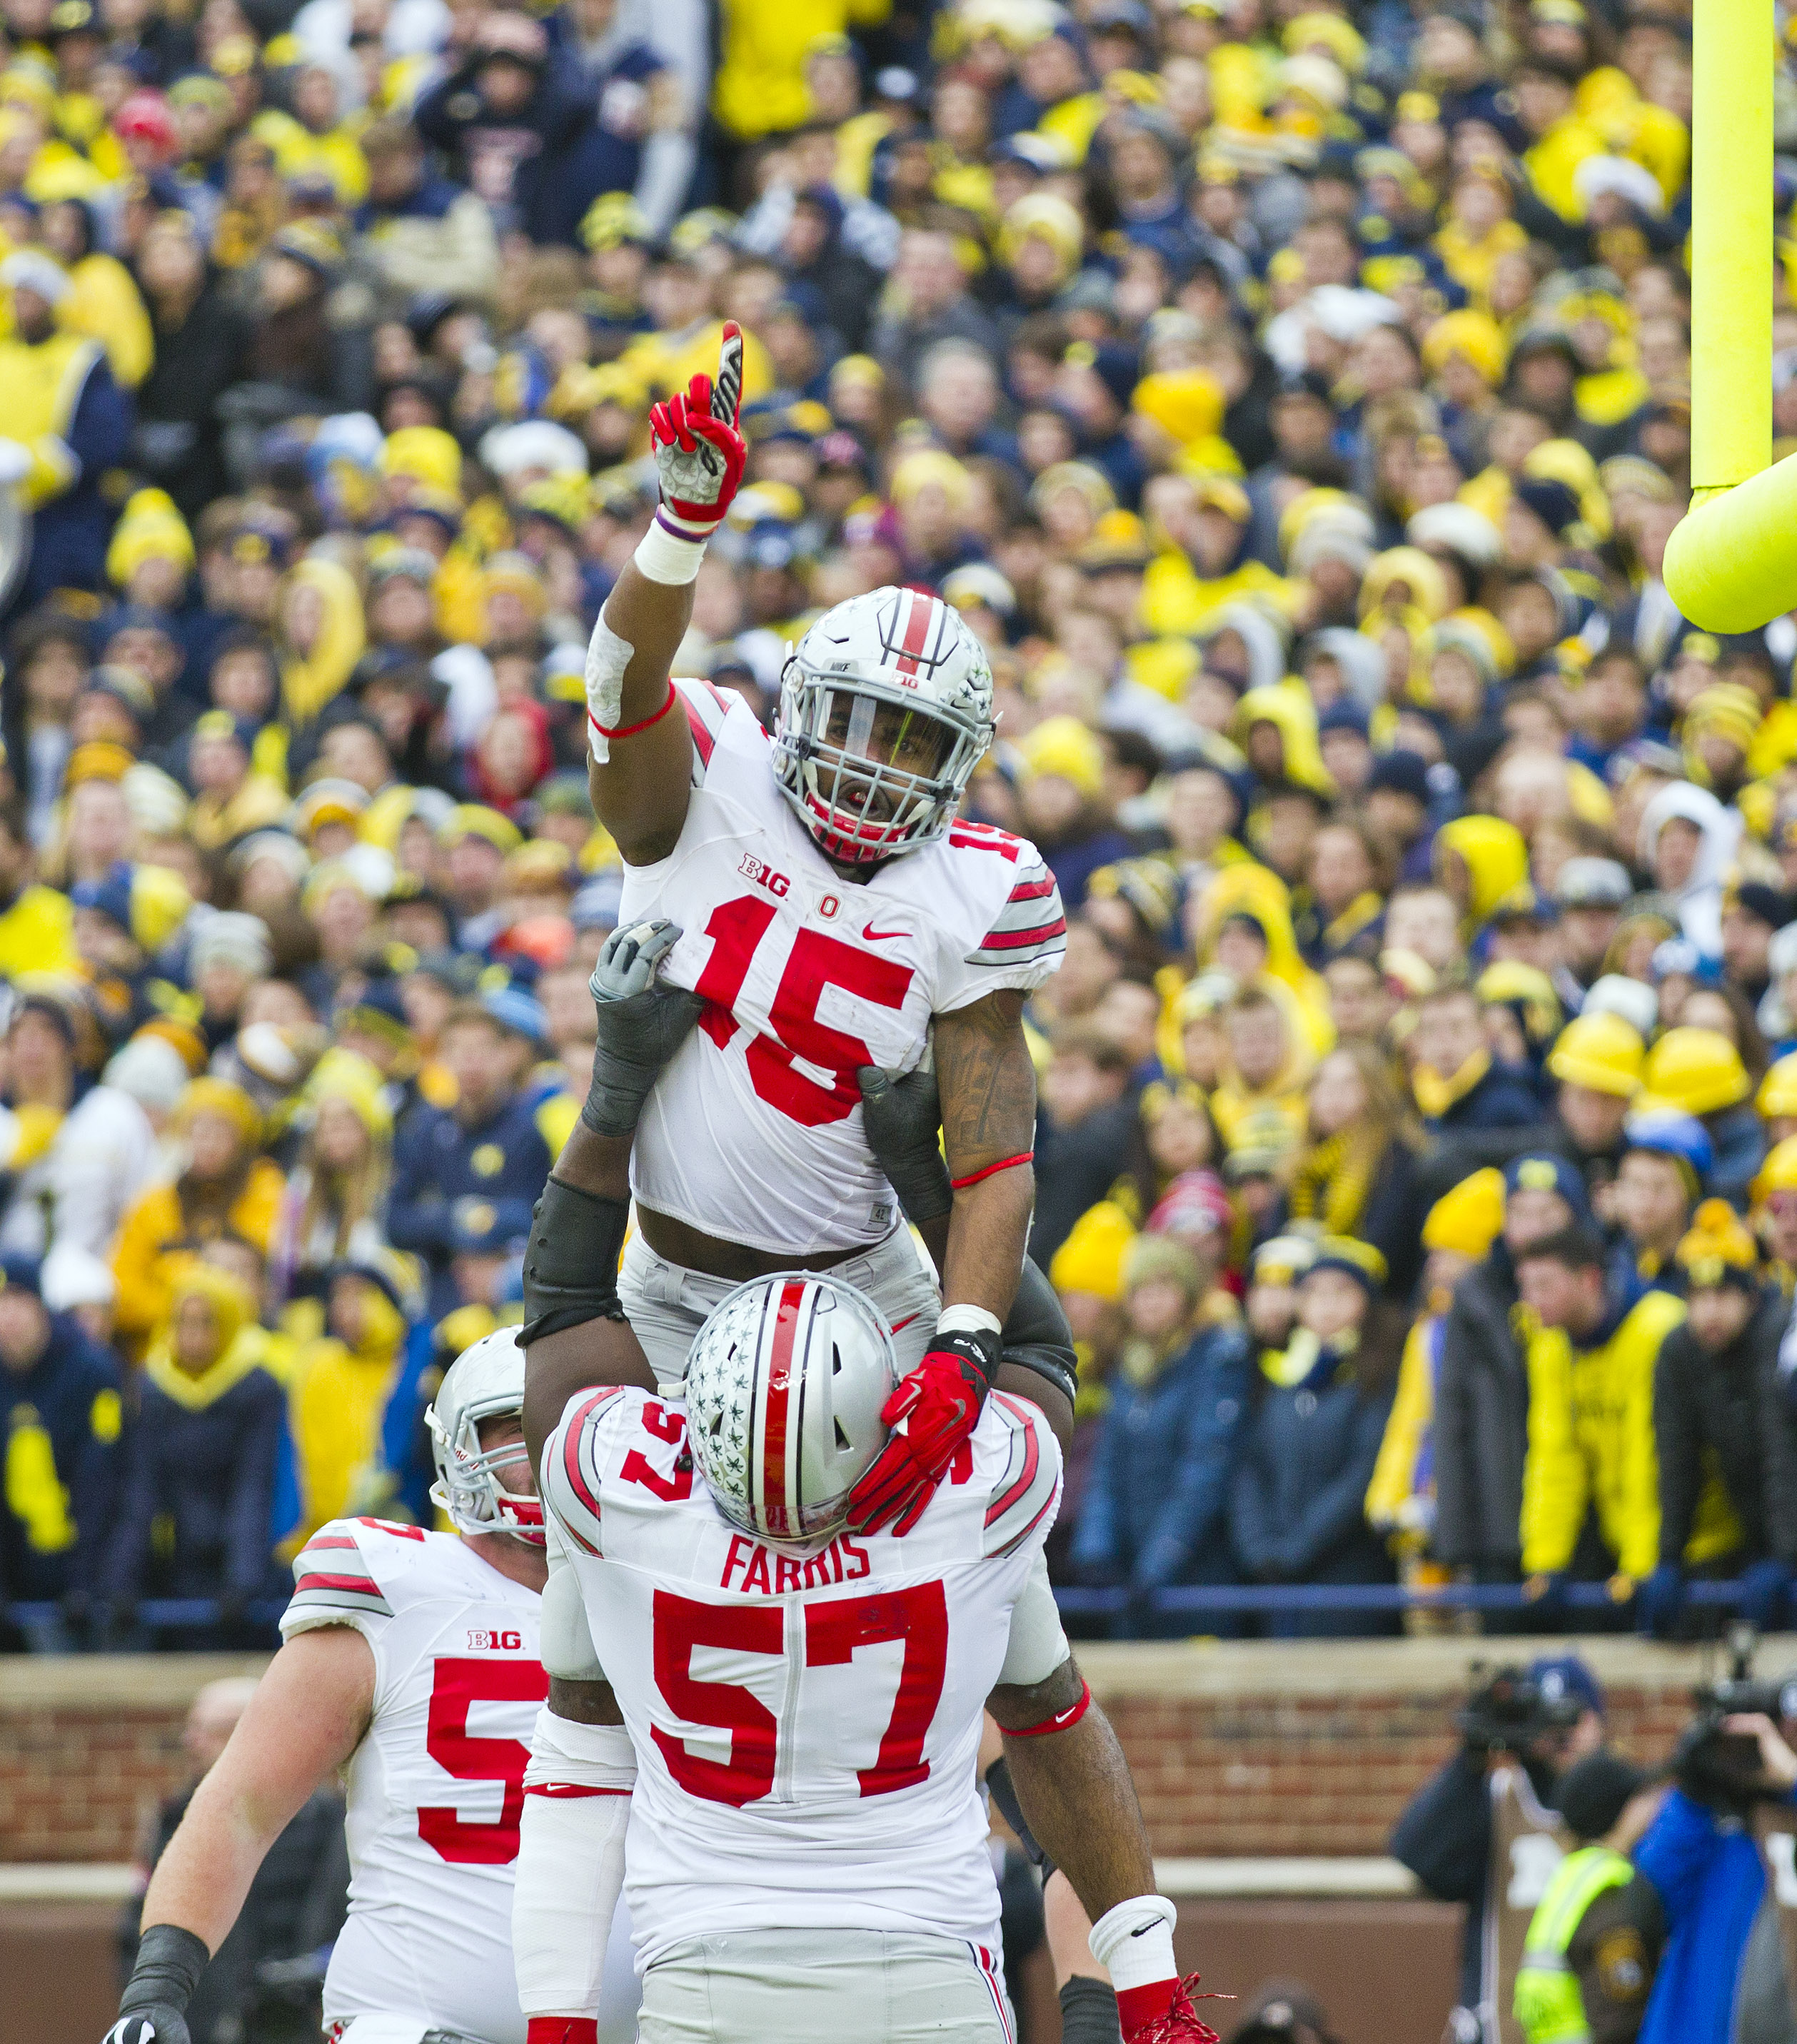 Ohio State running back Ezekiel Elliott (15) gets lifted in the air by offensive lineman Chase Farris (57) as they celebrate Elliott's touchdown in the second quarter of an NCAA college football game against Michigan in Ann Arbor, Mich., Saturday, Nov. 28